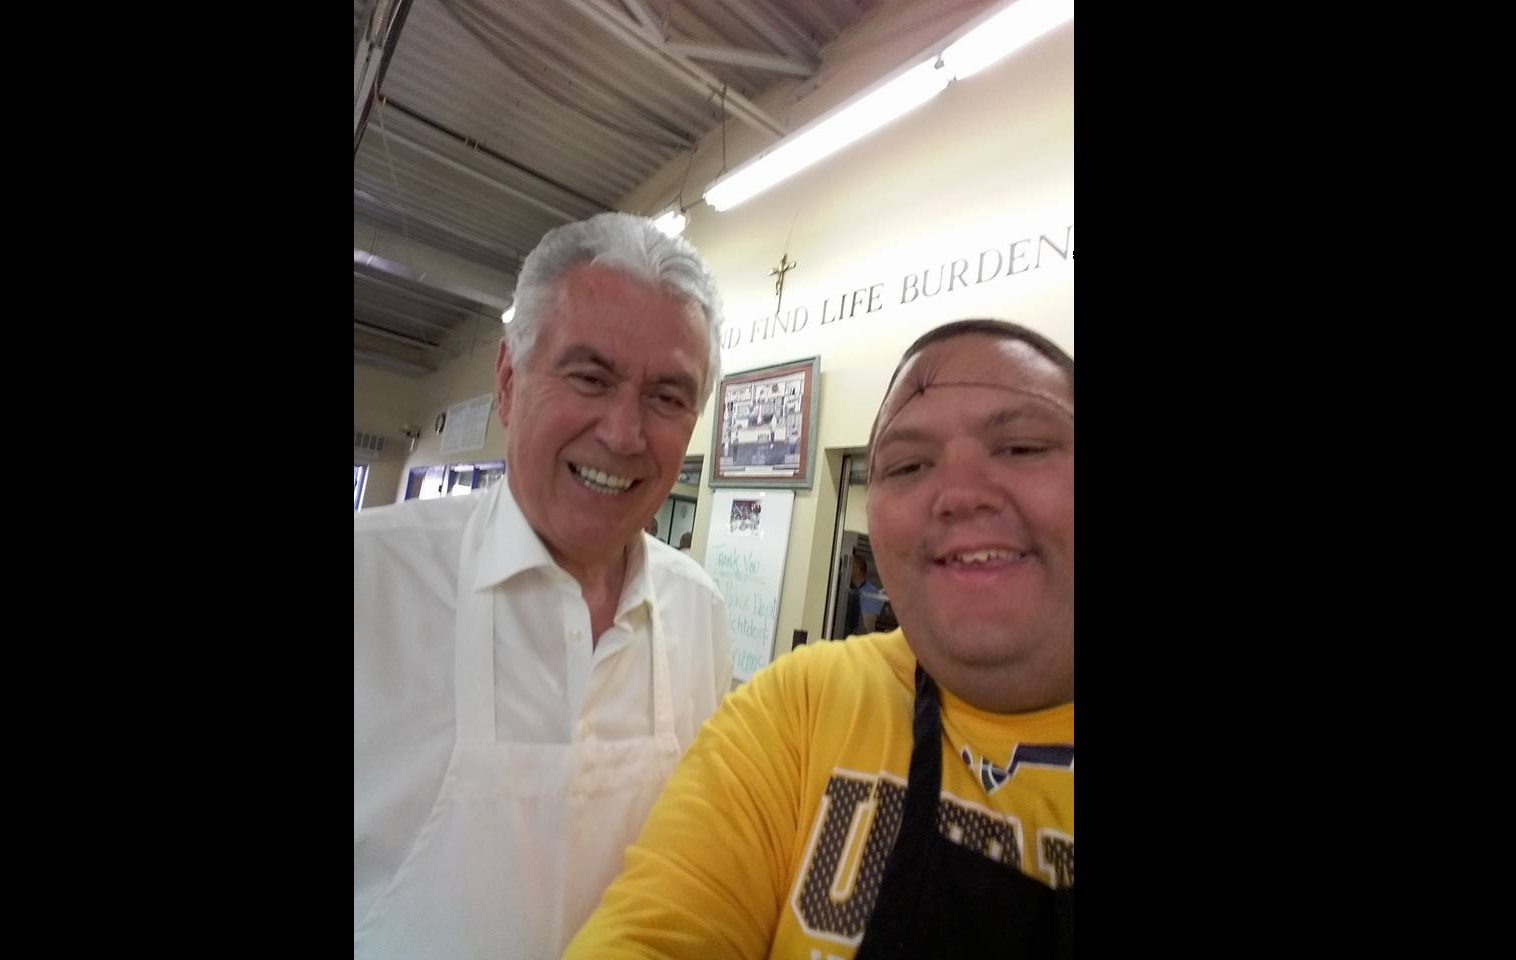 LDS Man Goes To Serve the Homeless…Unexpectedly Runs into President Uchtdorf.